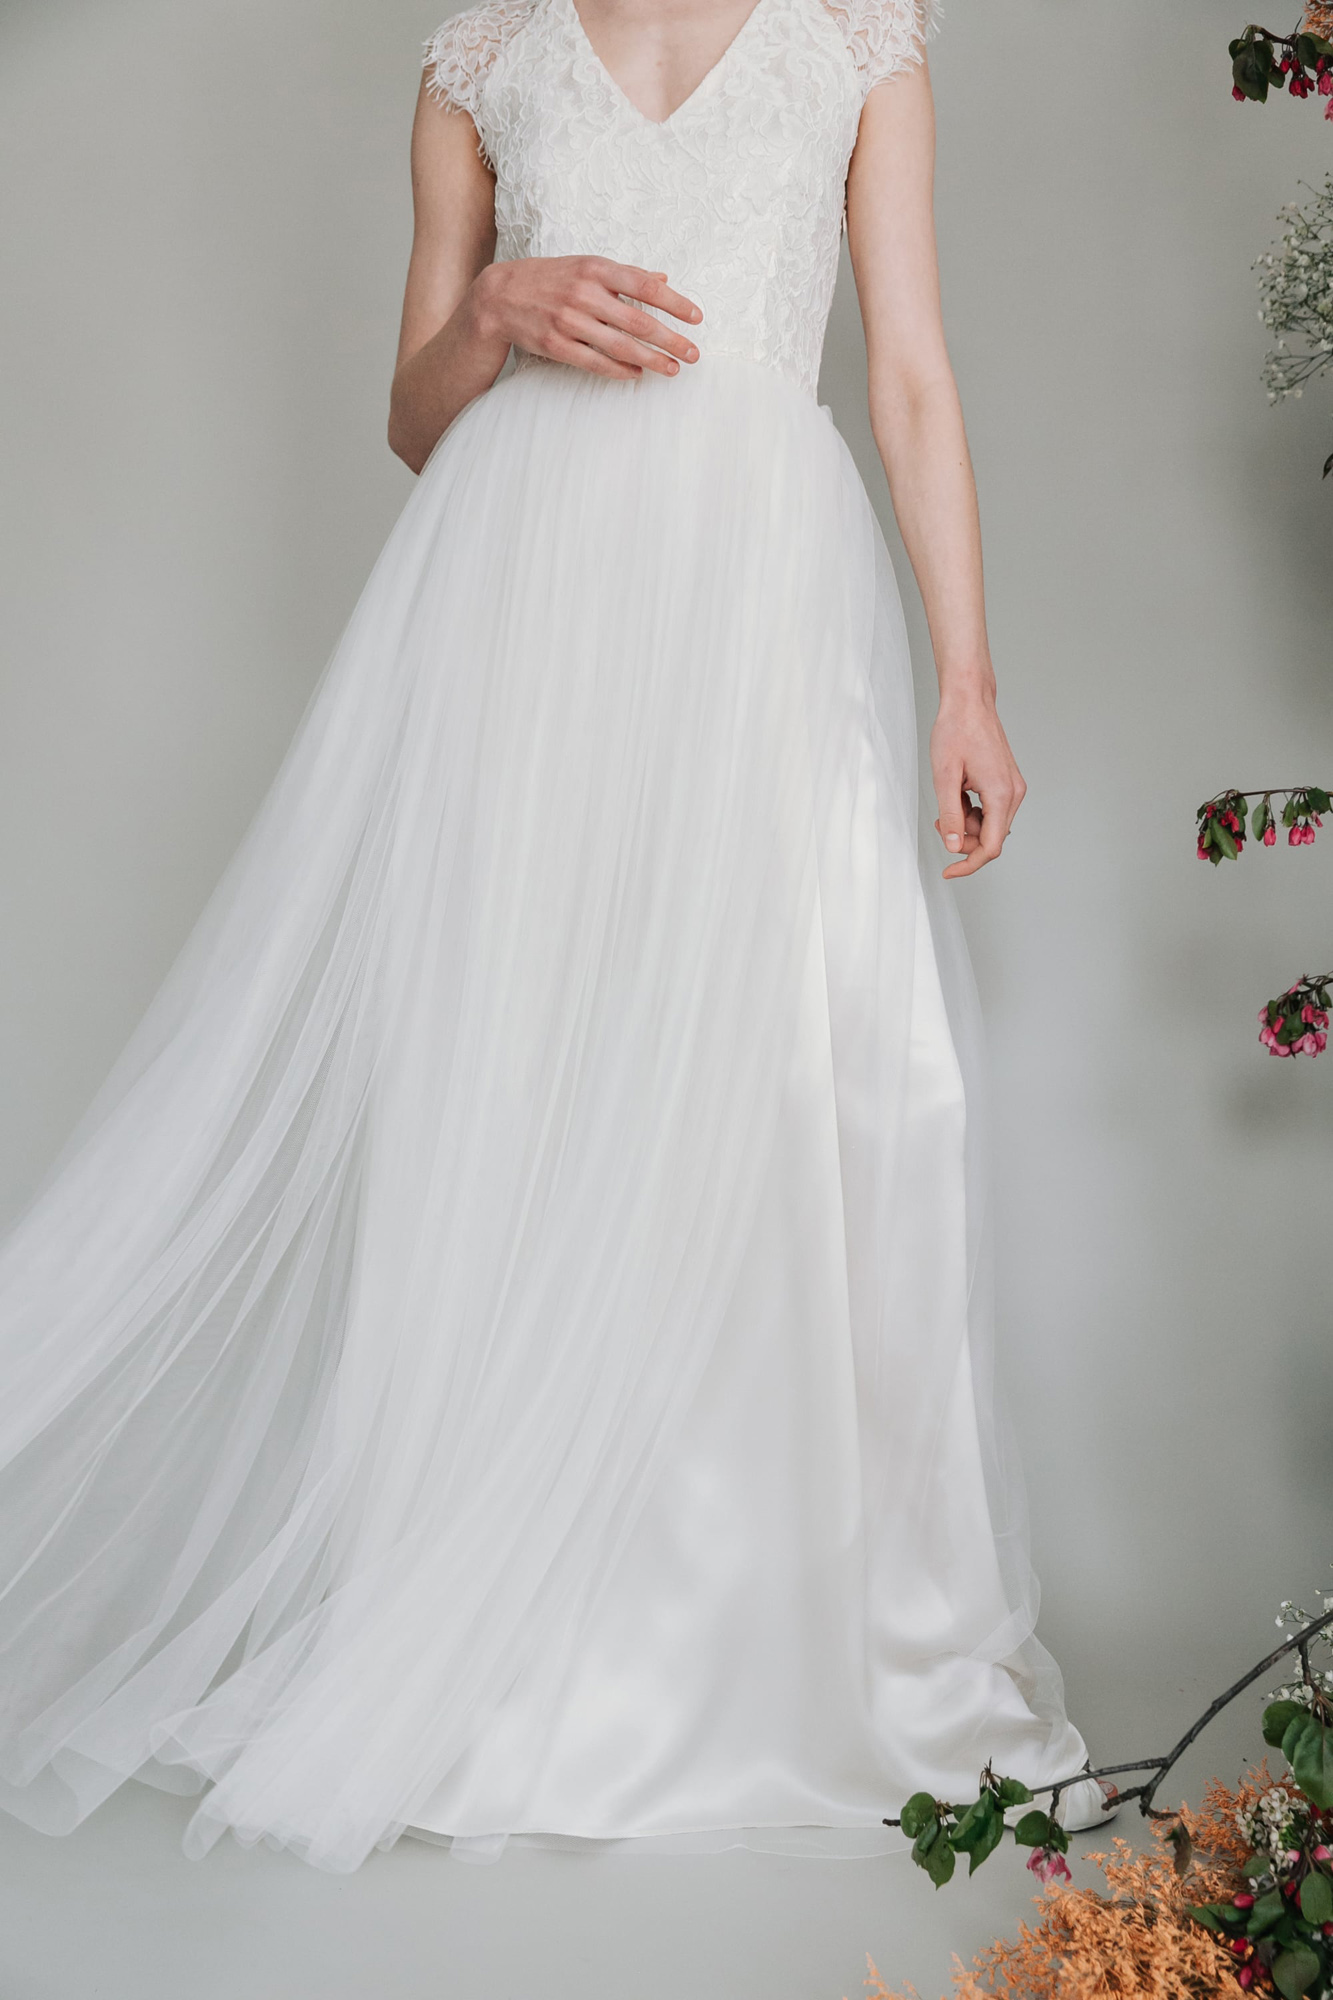 Kate-Beaumont-Sheffield-Mimosa-Lace-Tulle-Bohemian-Wedding-Gown-1.jpg